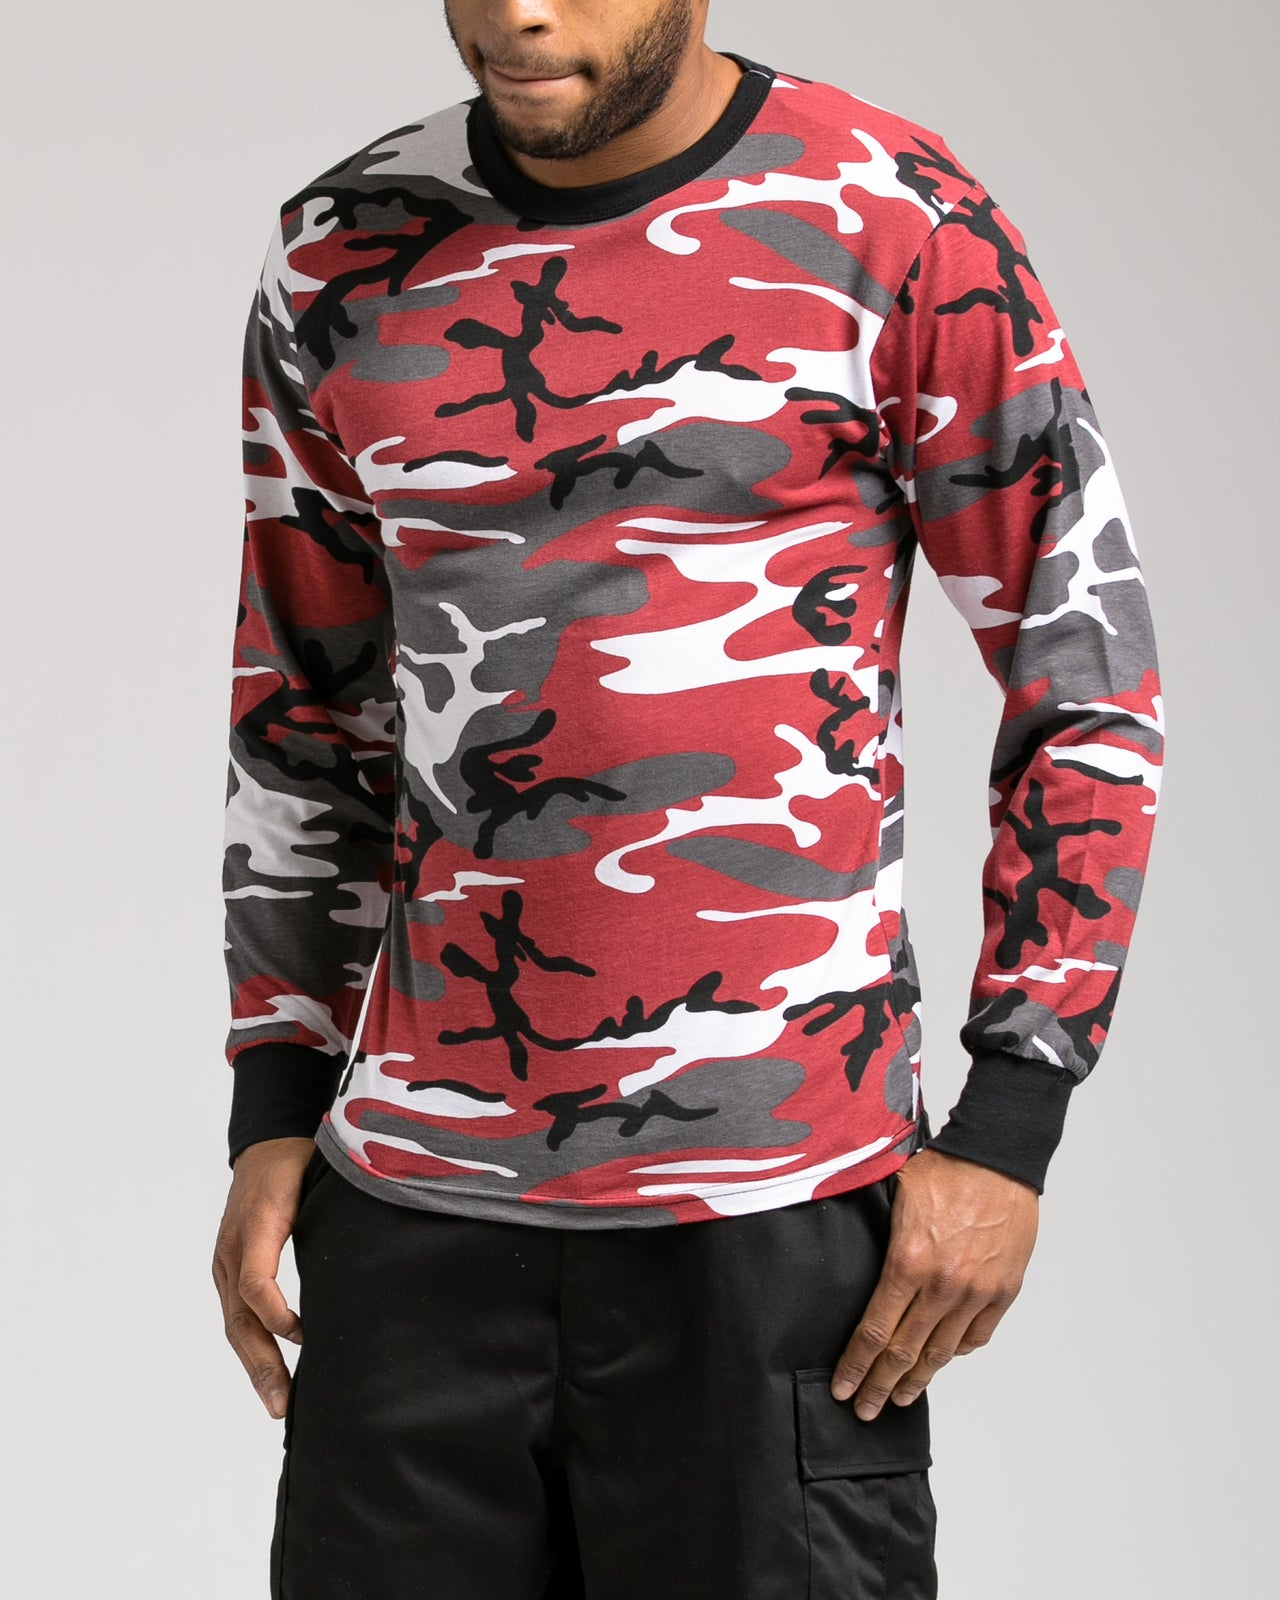 Color Camo Long Sleeve Tee - Color: Red camo | Red